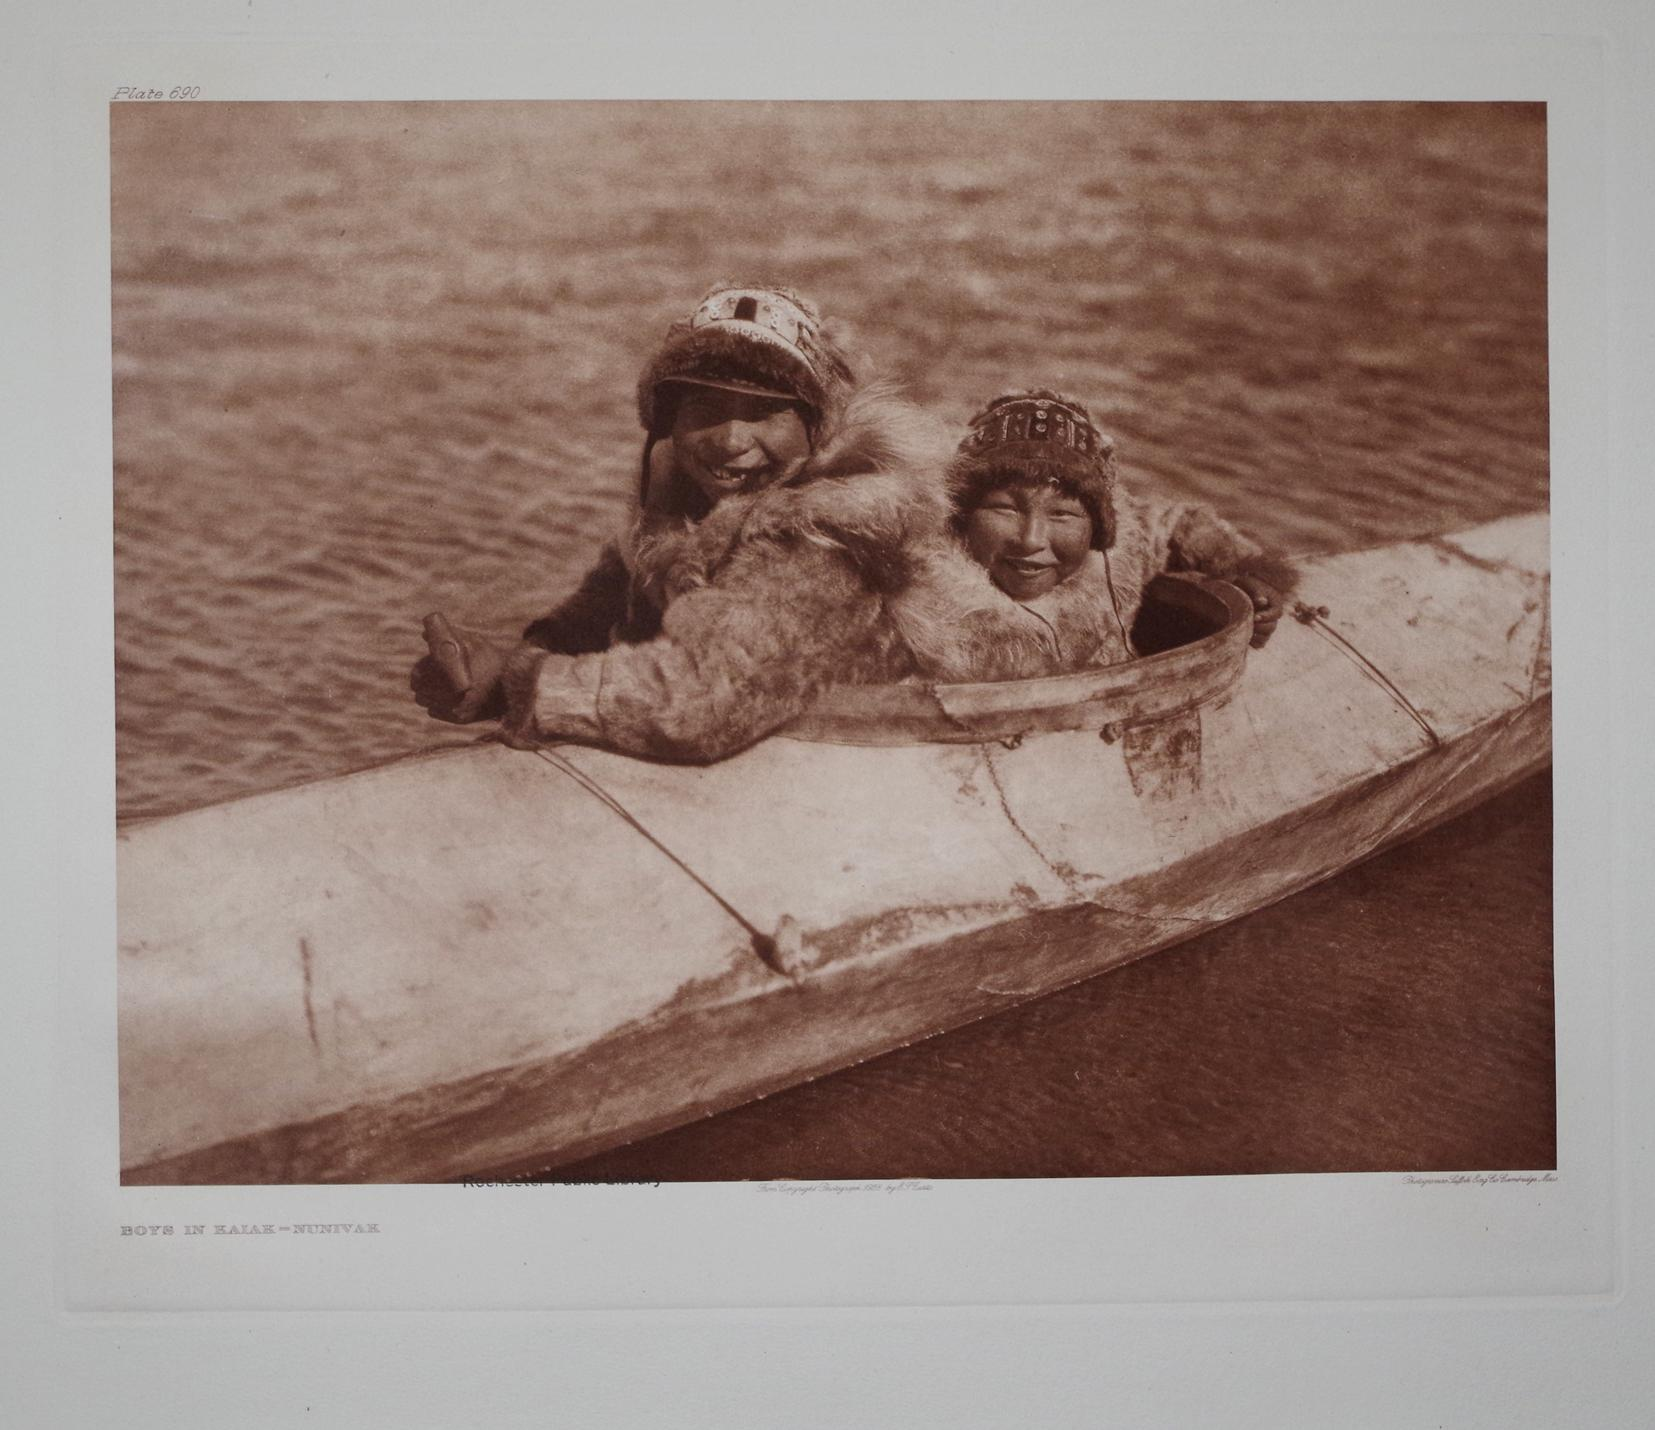 Boys in Kaiak - Nunivak, Plate 690 from The North American Indian. Portfolio XX: Edward S. Curtis (...